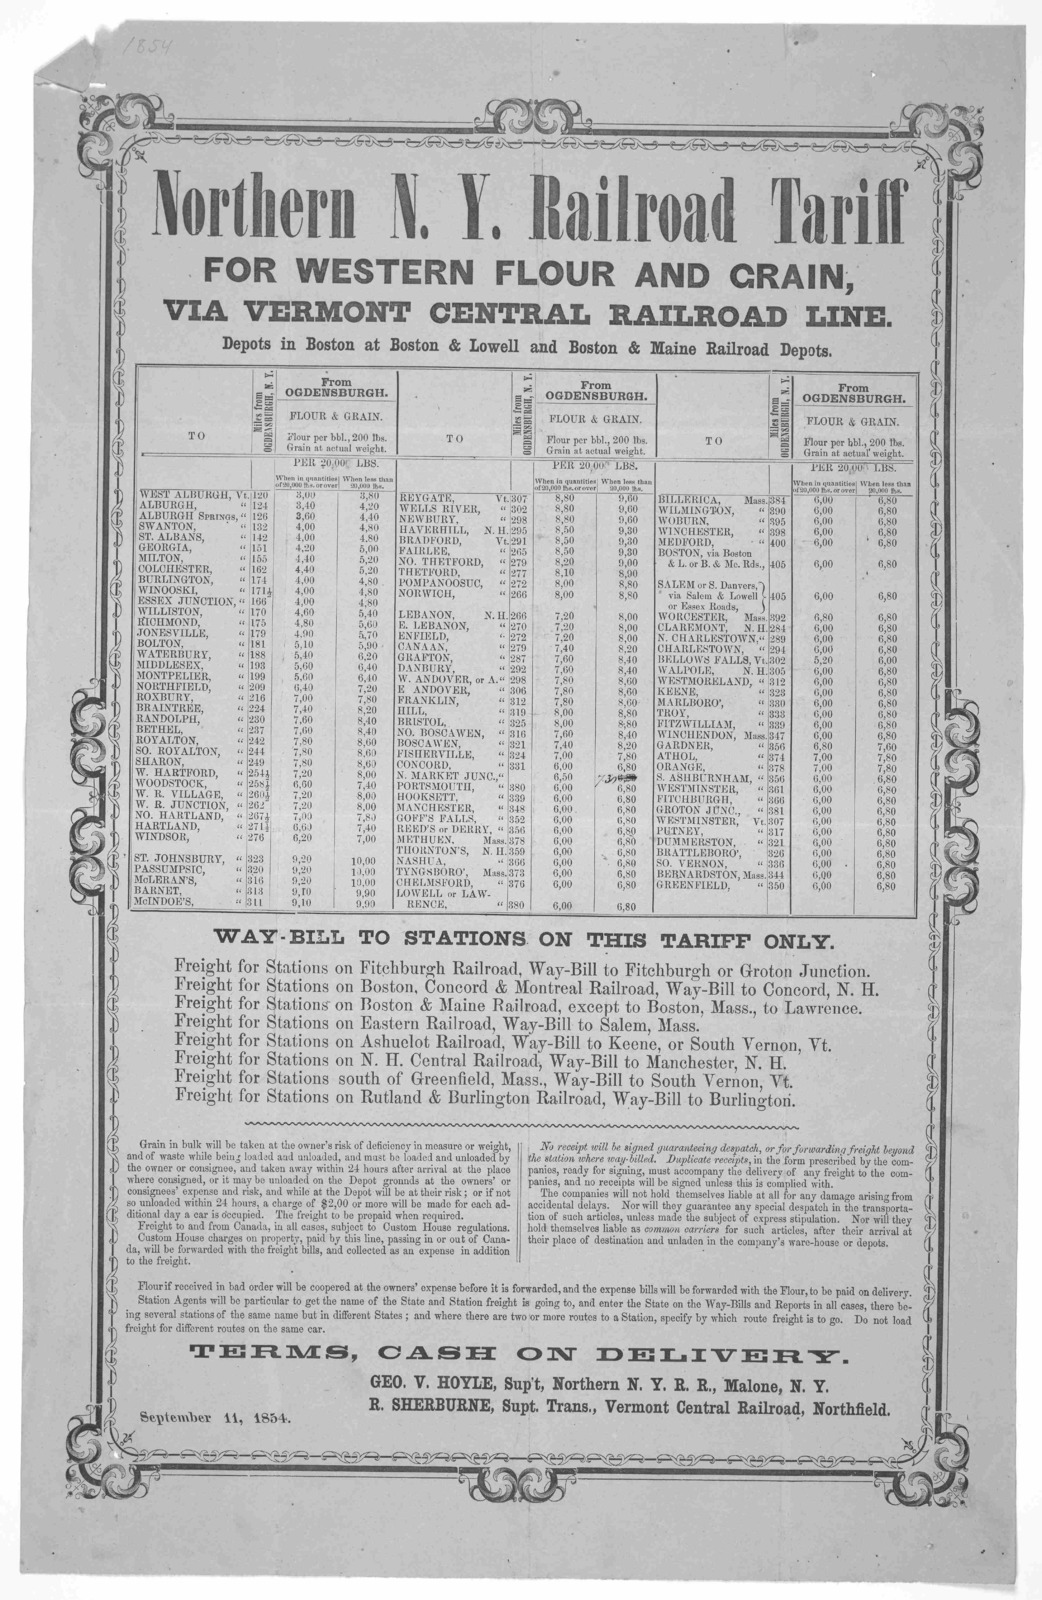 Northern N. Y. railroad tariff for Western flour and grain, via Vermont central railroad line ... September 11, 1854.